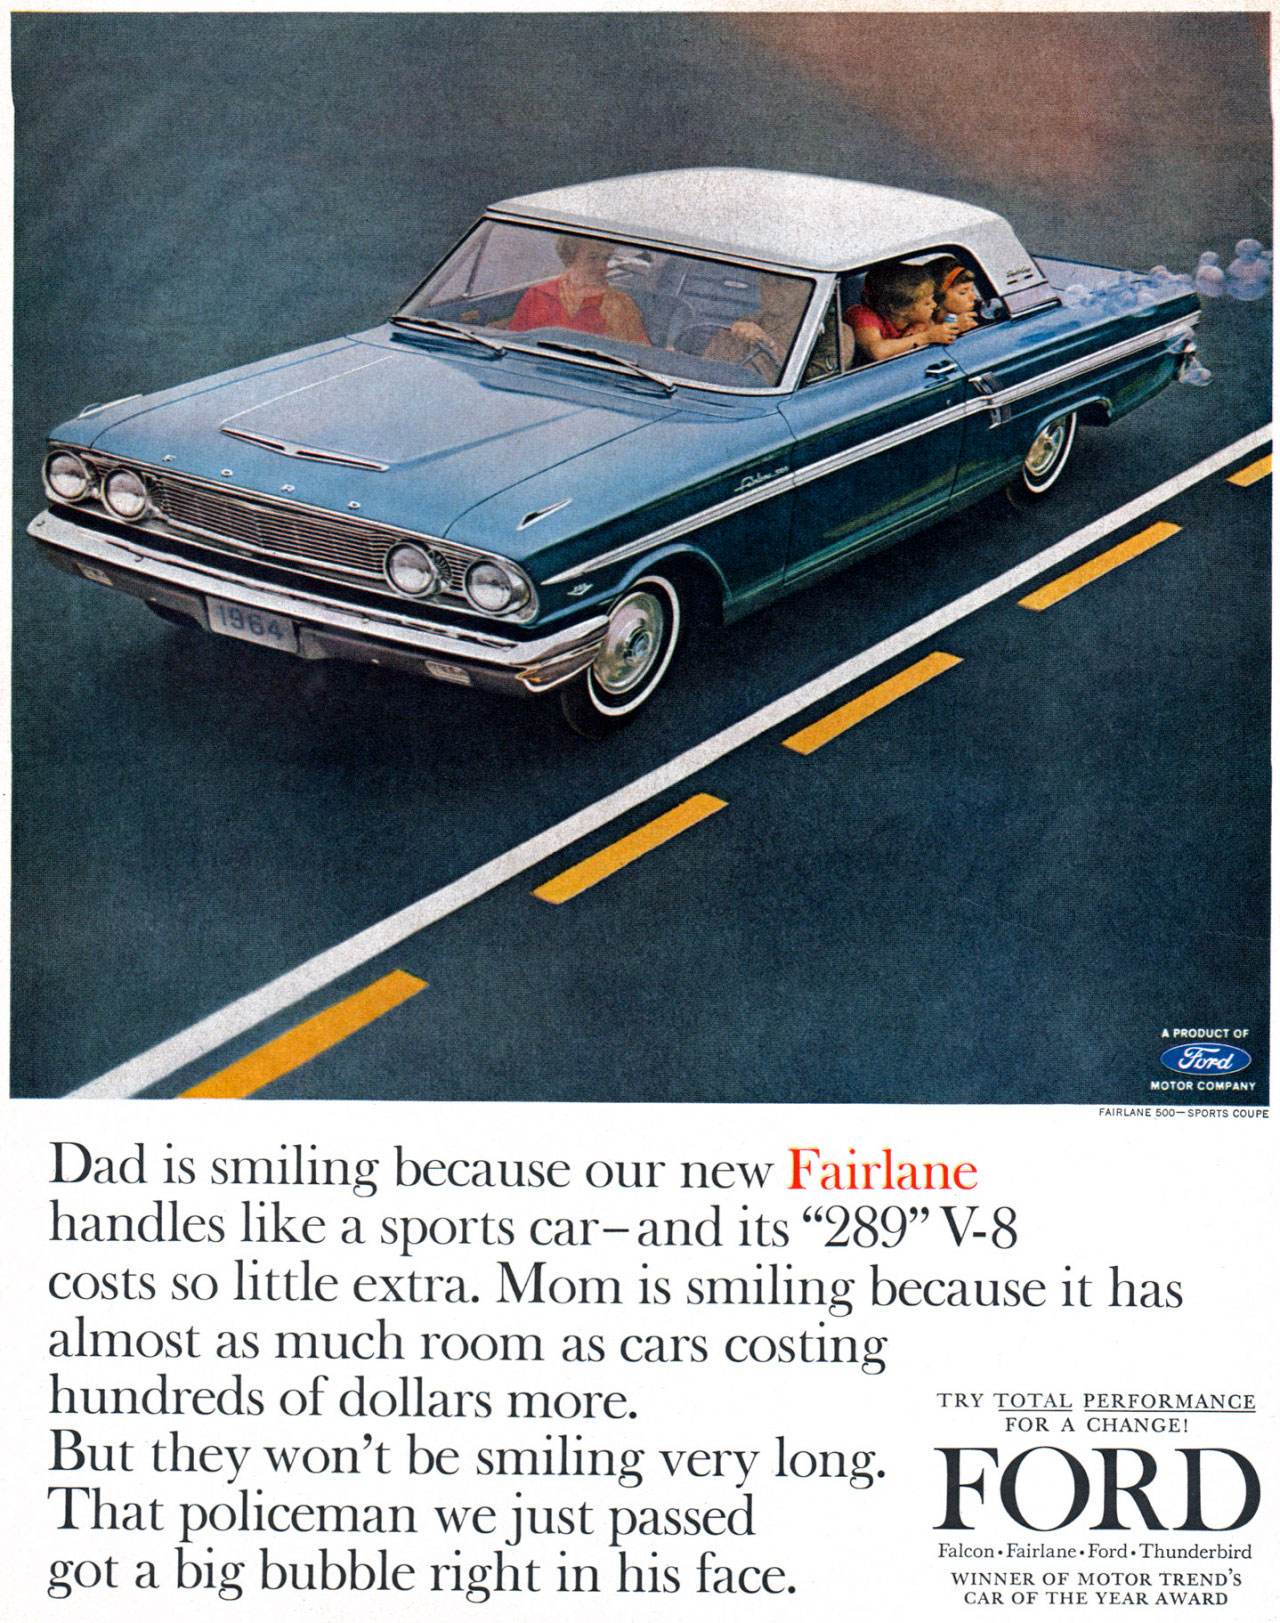 Dad is smiling because our new Ford Fairlane handles like a sports car—and its 289 V8 costs so little extra. Mom is smiling because it has almost as much room as cars costing hundreds of dollars more. TRY TOTAL PERFORMANCE FOR A CHANGE!  But they won't be smiling very long. FORD That policeman we just passed  Falcon•Fairlane•Ford•Thunderbird got a big bubble right in his face. WINNER OF MOTOR TREND'S CAR OF THE YEAR AWARD